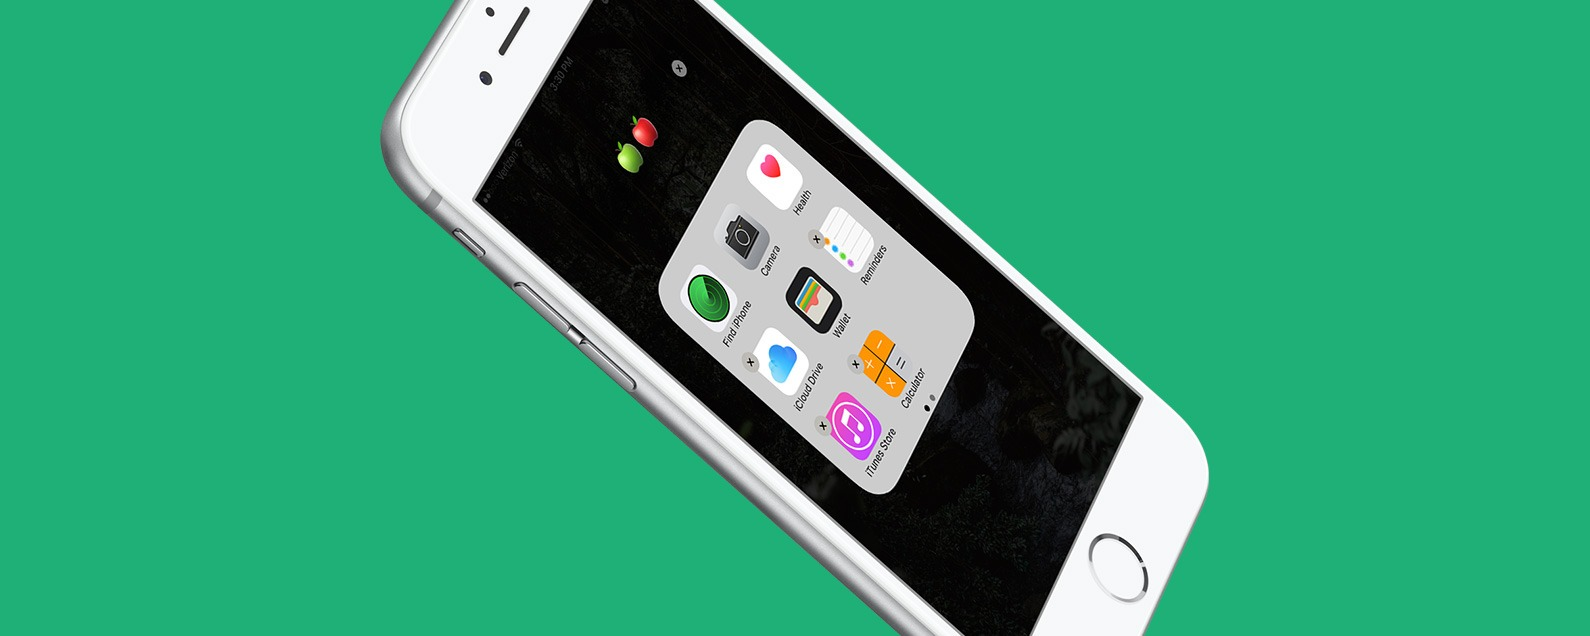 How to hide folders on iphone